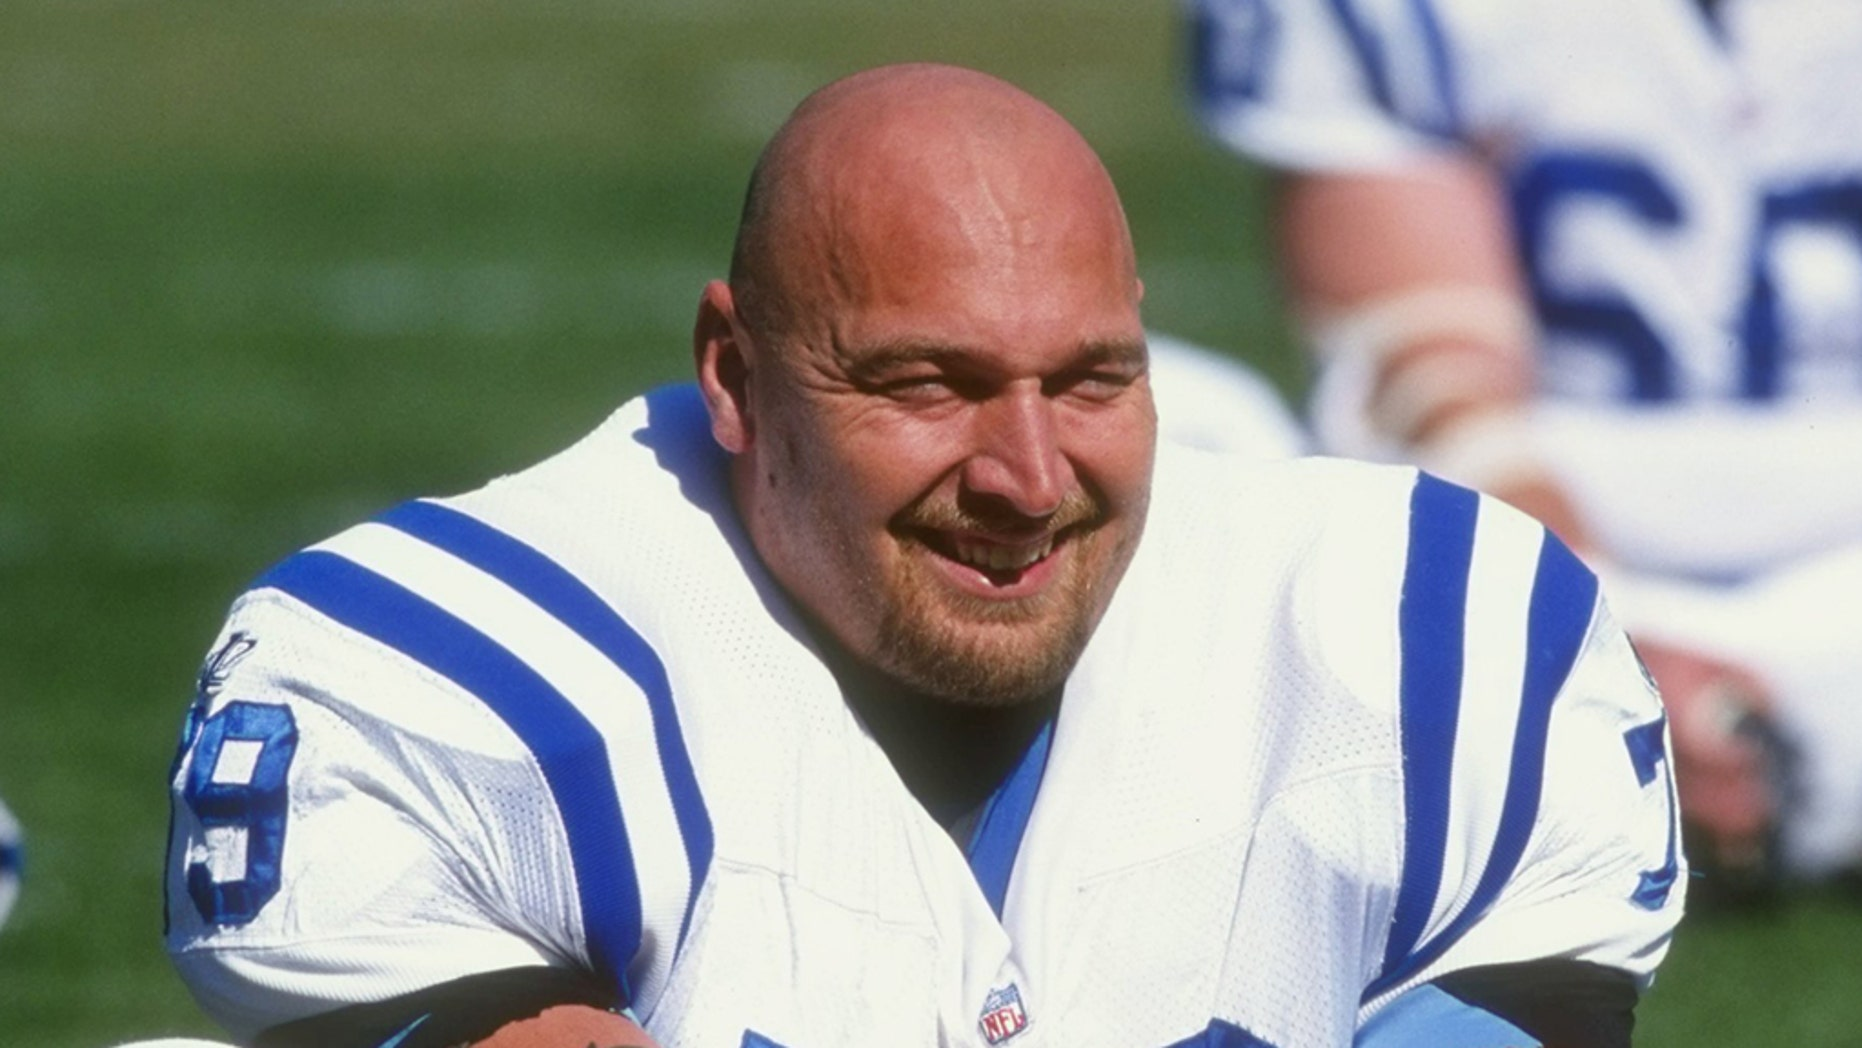 Tony Mandarich closed out his career with the Indianapolis Colts. (Tom Hauck /Allsport)